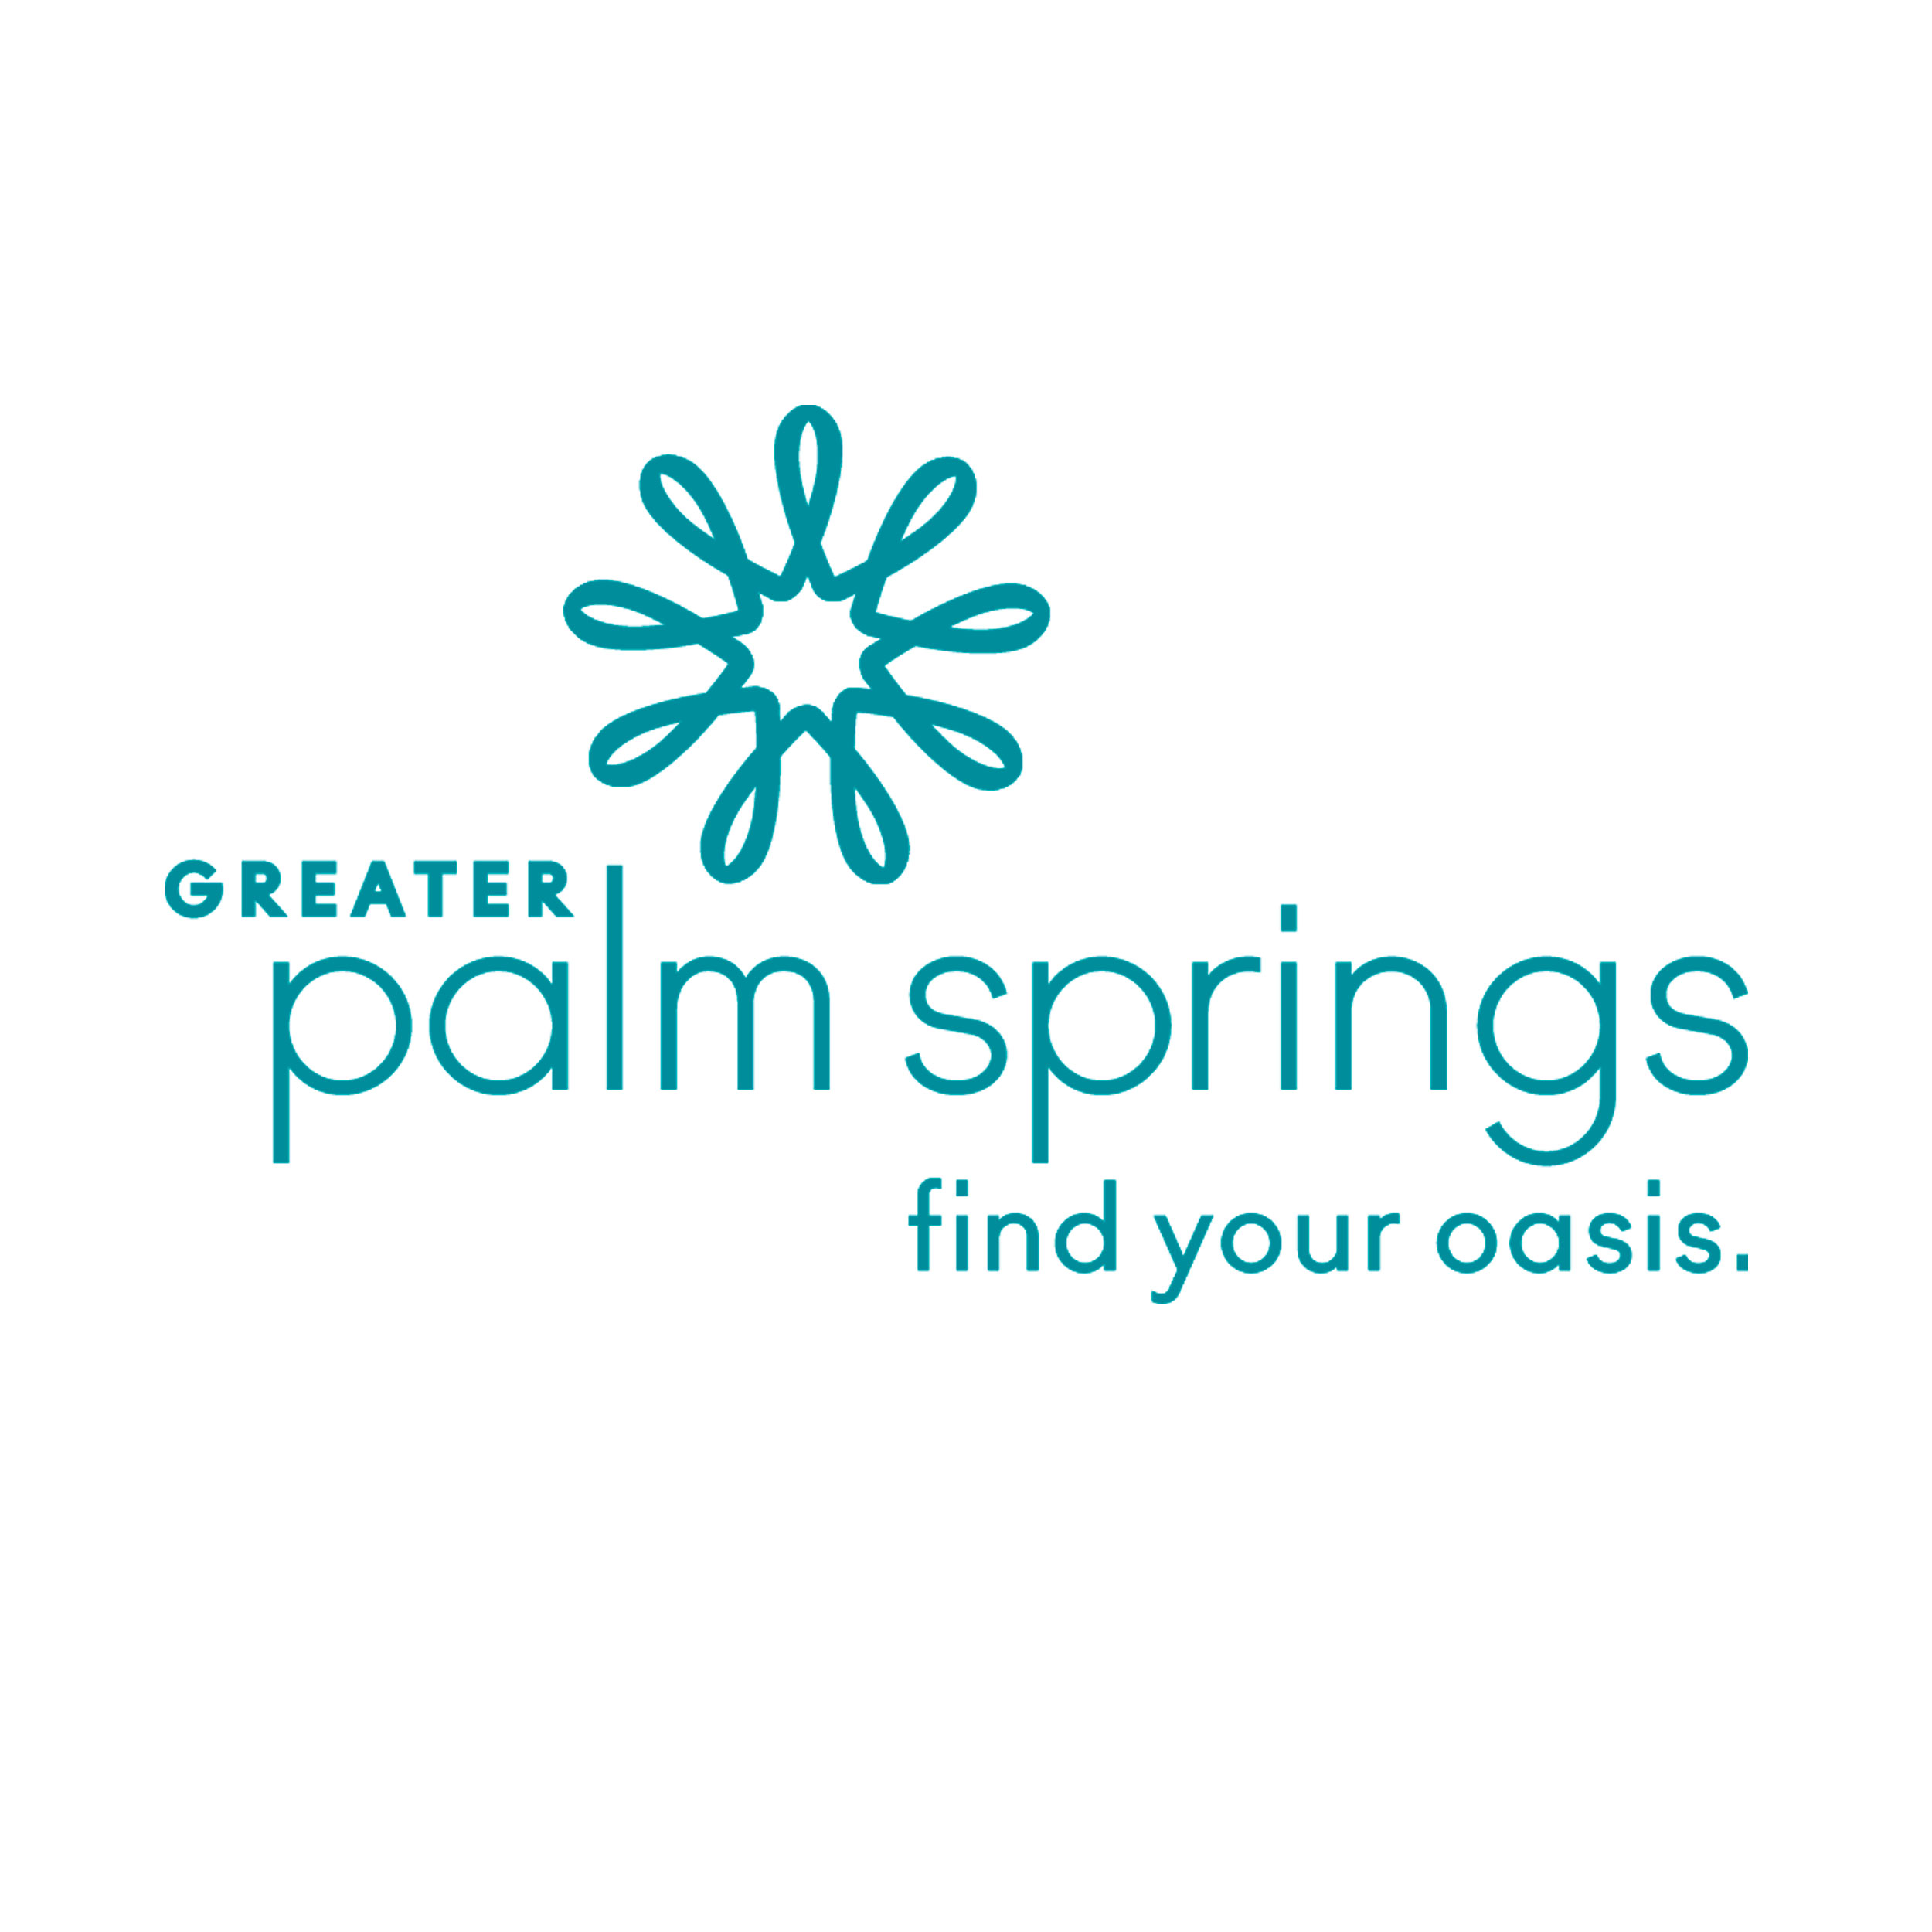 5515-1-Summit2017_Logos_PalmSprings.jpg